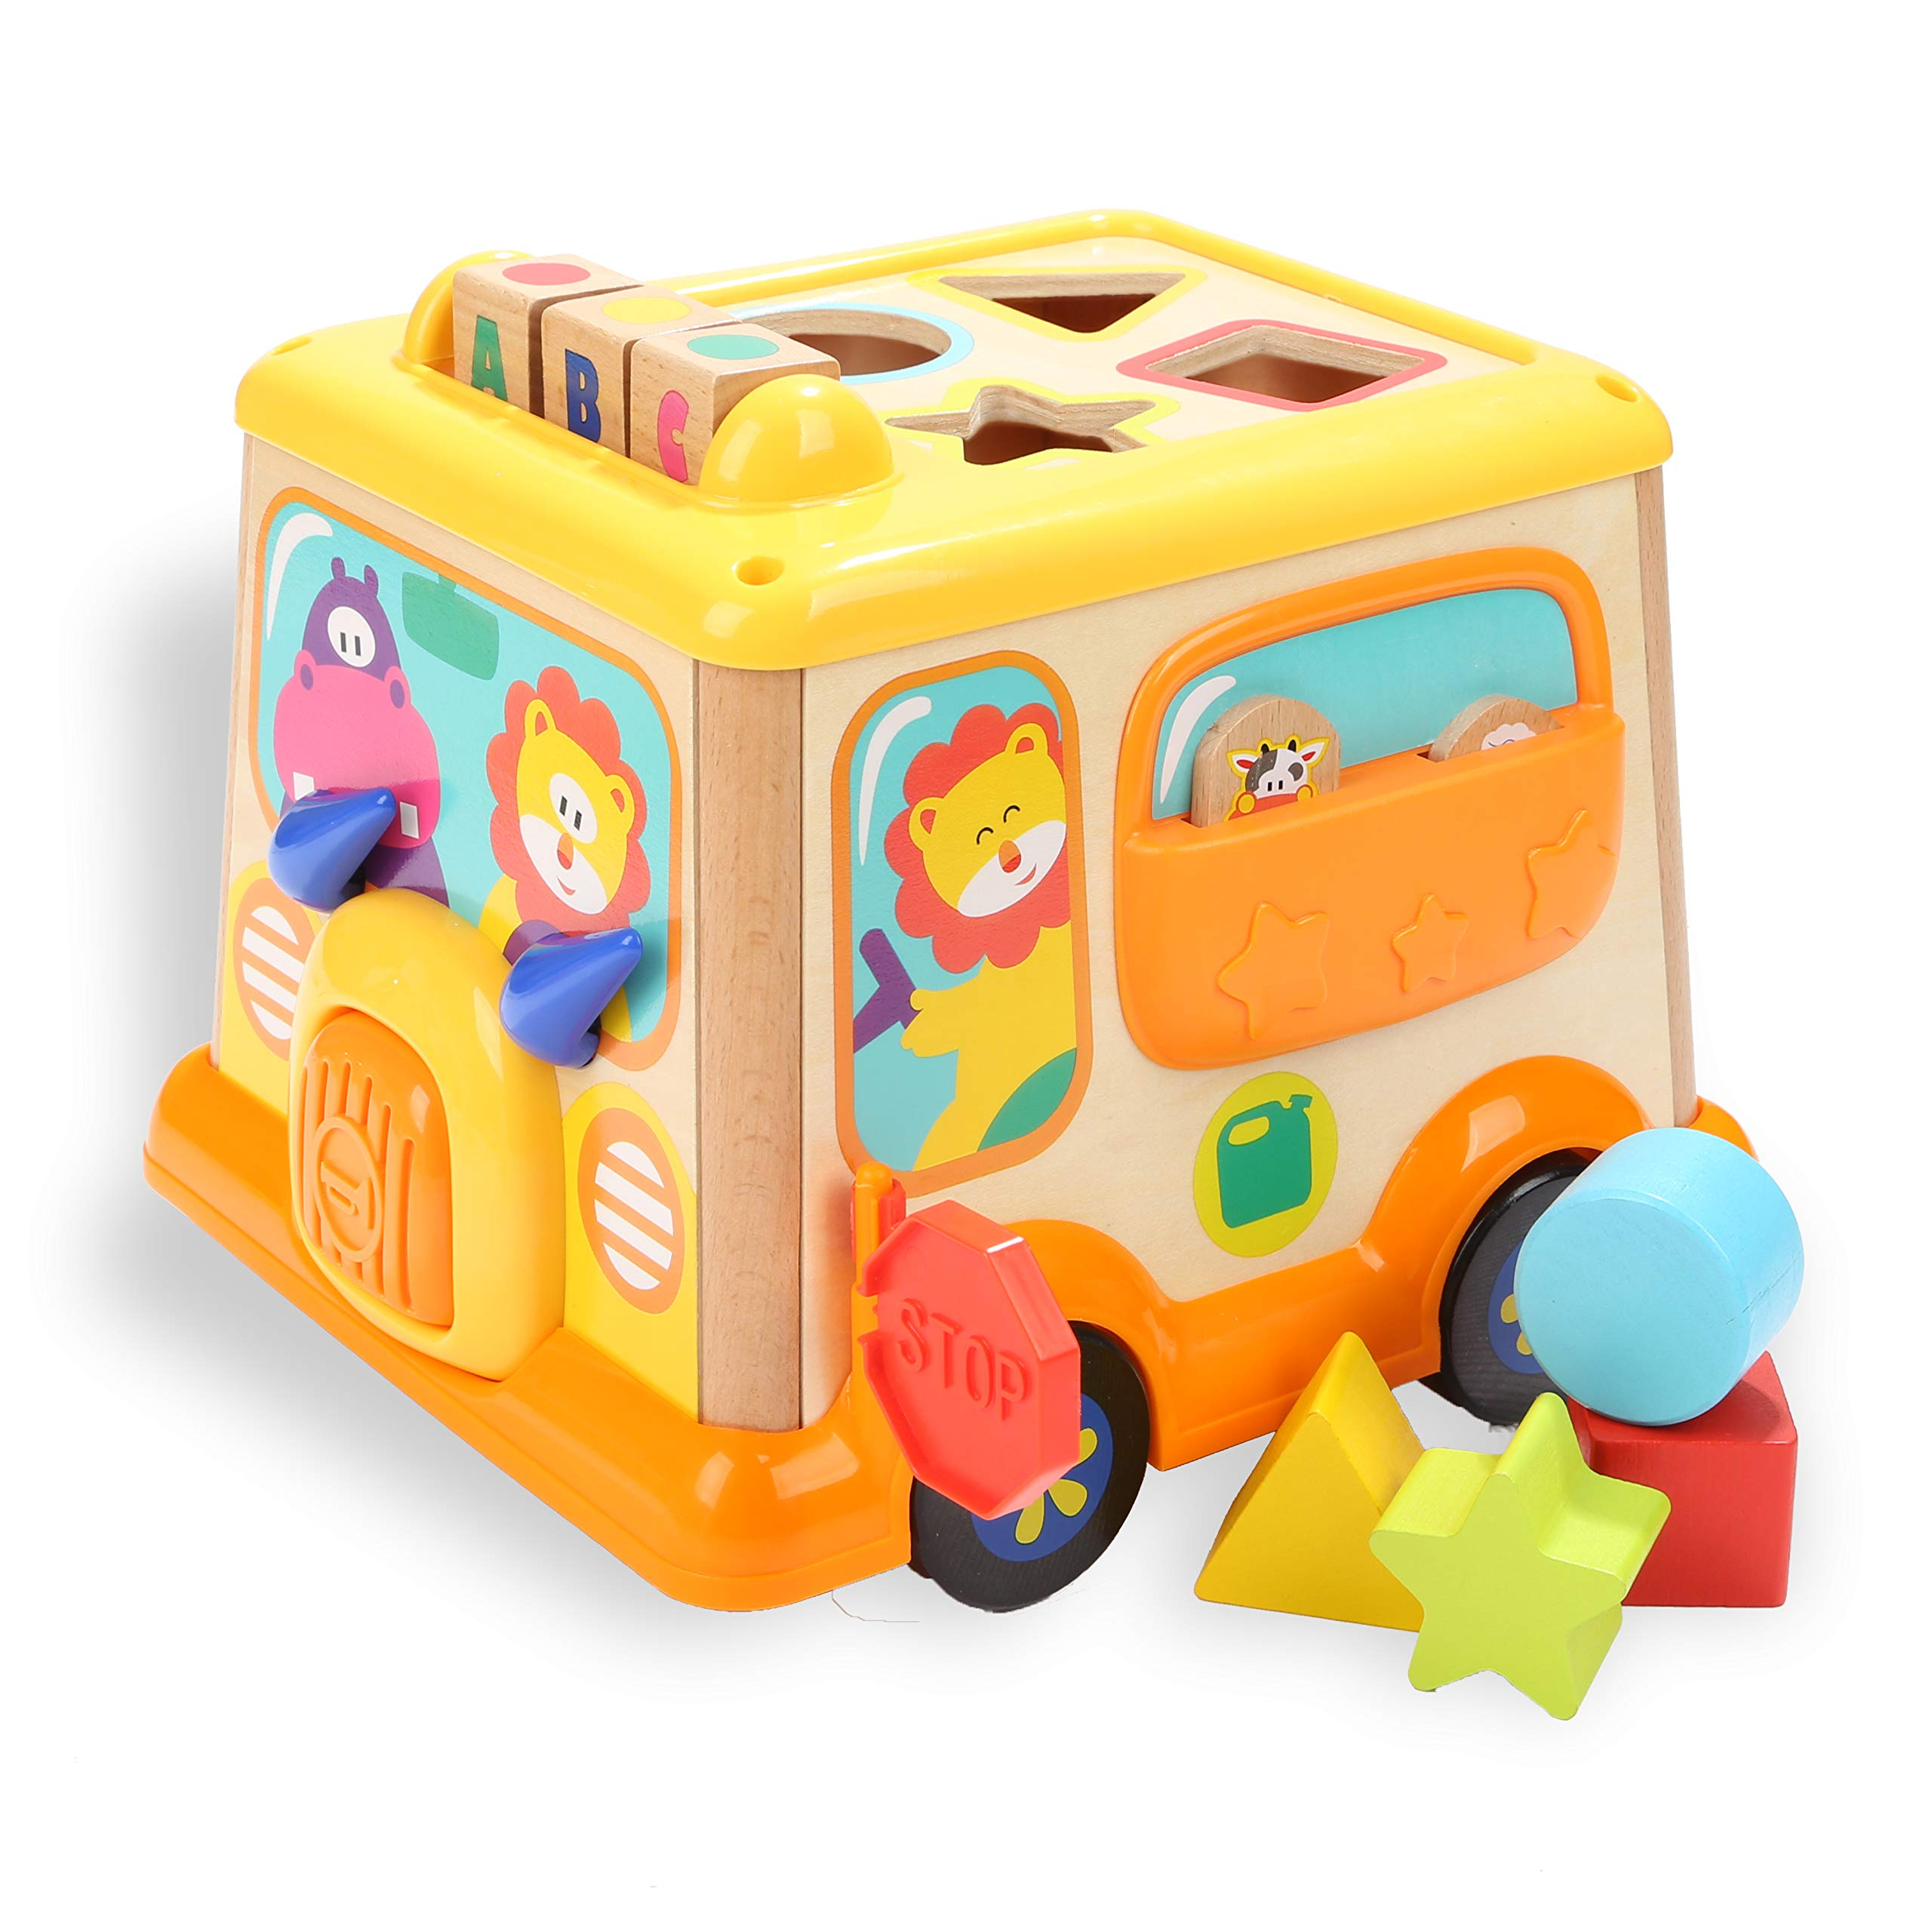 TOP BRIGHT Activity Cube Shape Sorter Baby Educational Game Toys Busy Learner Cube